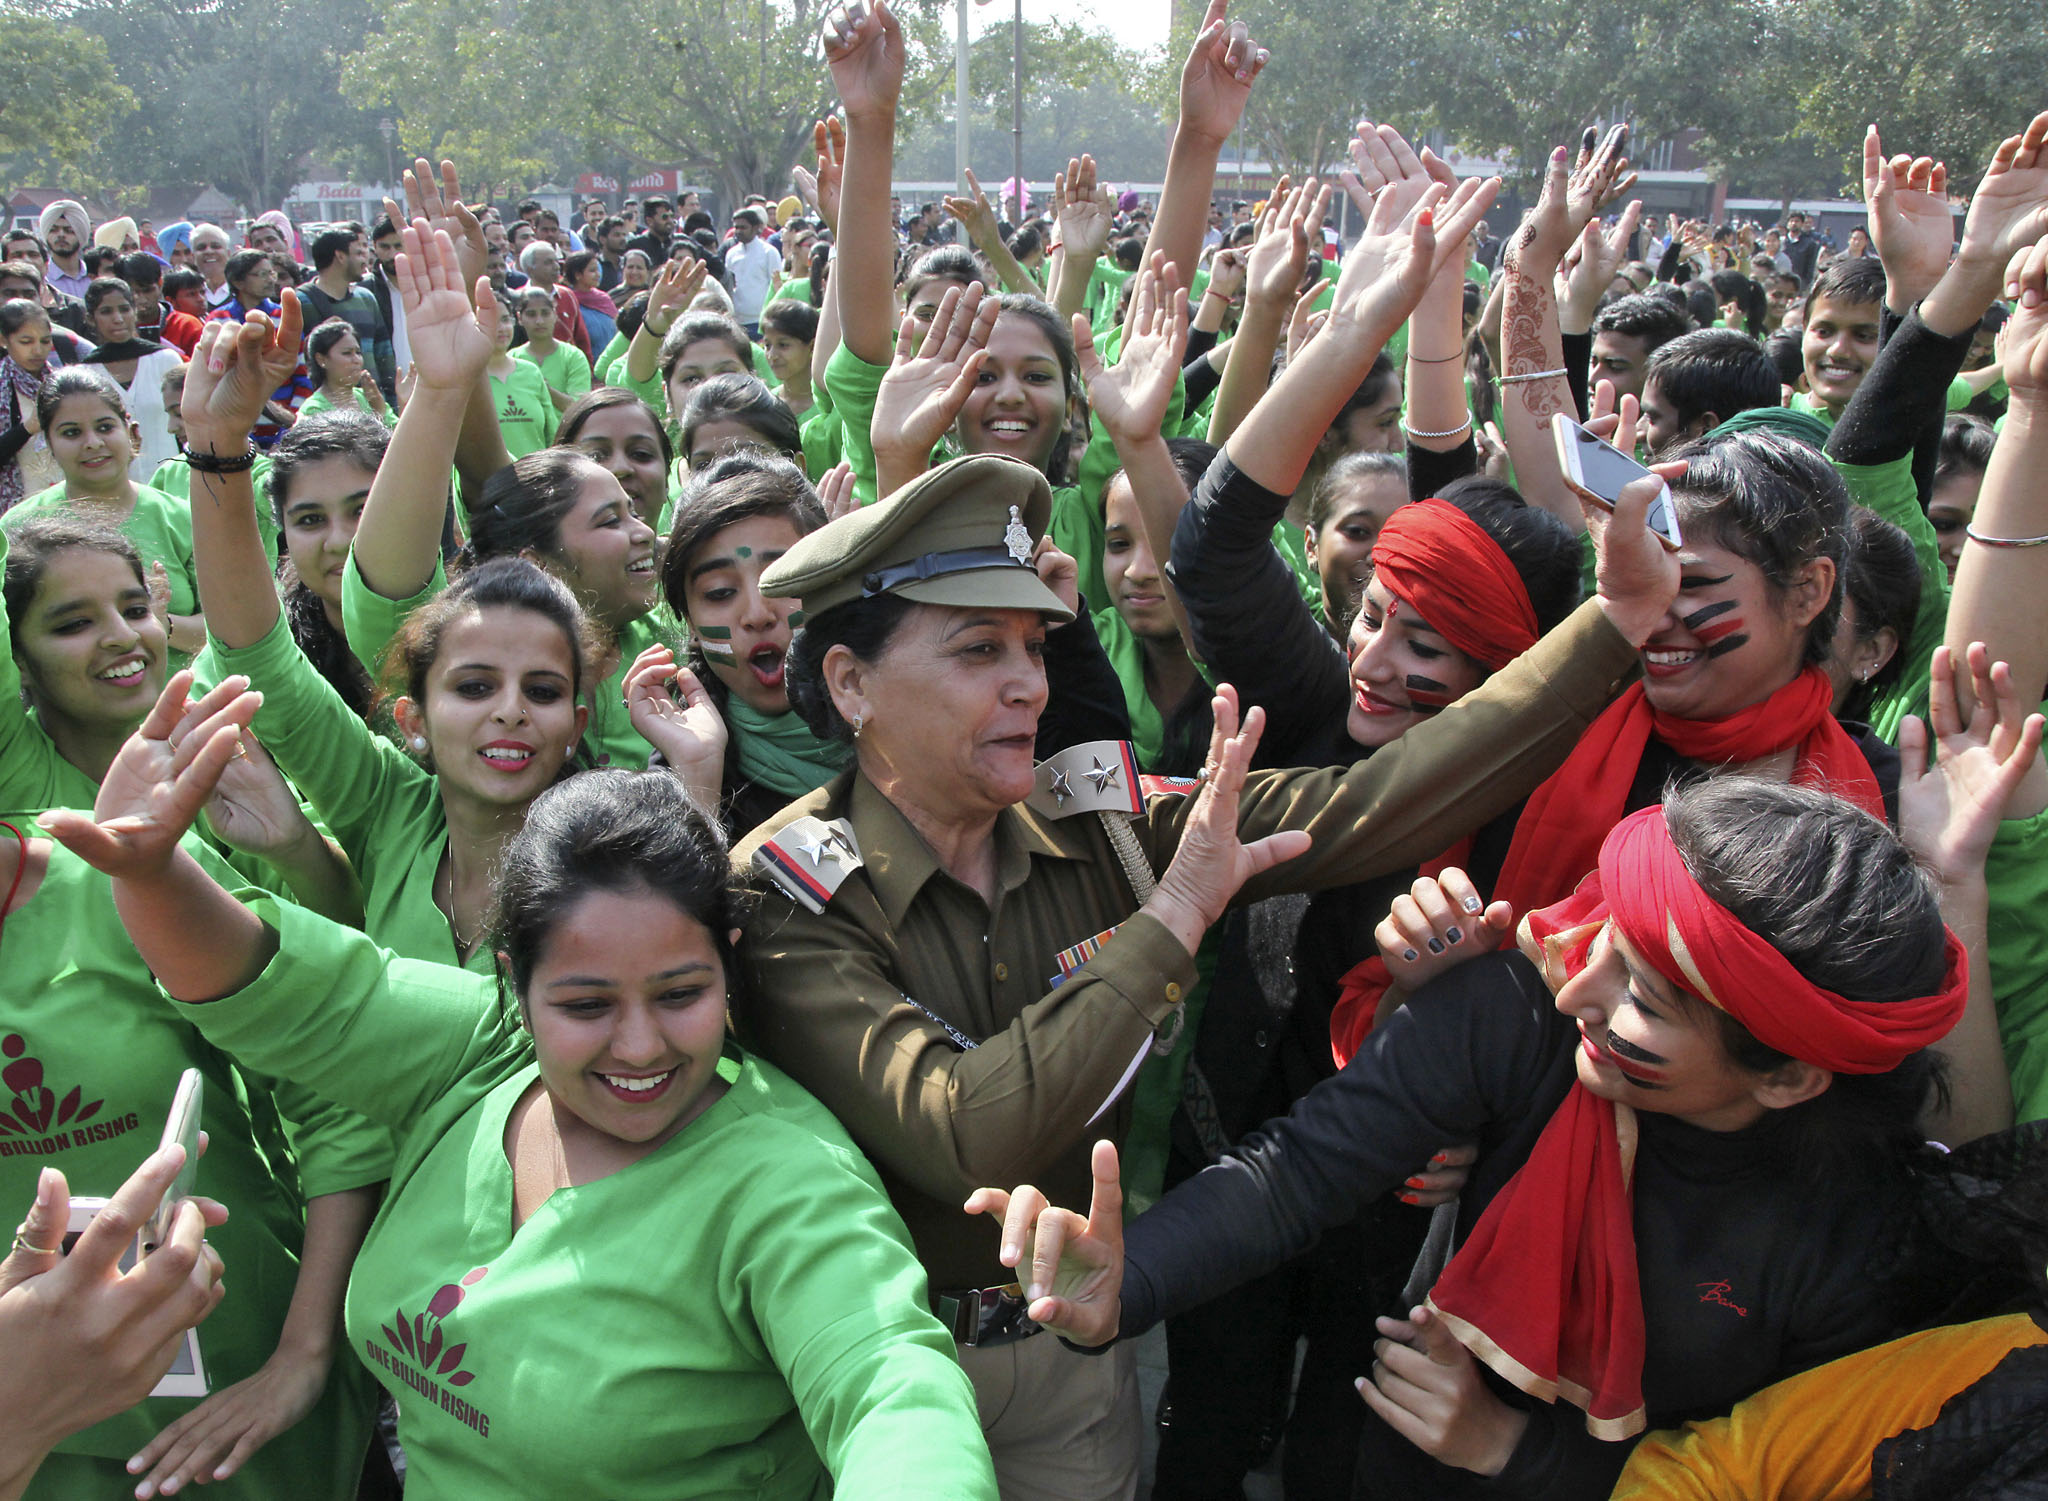 "Students and a women police officer dance as they take part in ""One Billion Rising"" campaign on a street in Chandigarh...Students and a women police officer (C) dance as they take part in ""One Billion Rising"" campaign on a street in Chandigarh, India, February 2, 2016. One Billion Rising is a global coordinated campaign aimed to call for an end to violence against women and girls, according to its organisers. REUTERS/Ajay Verma"